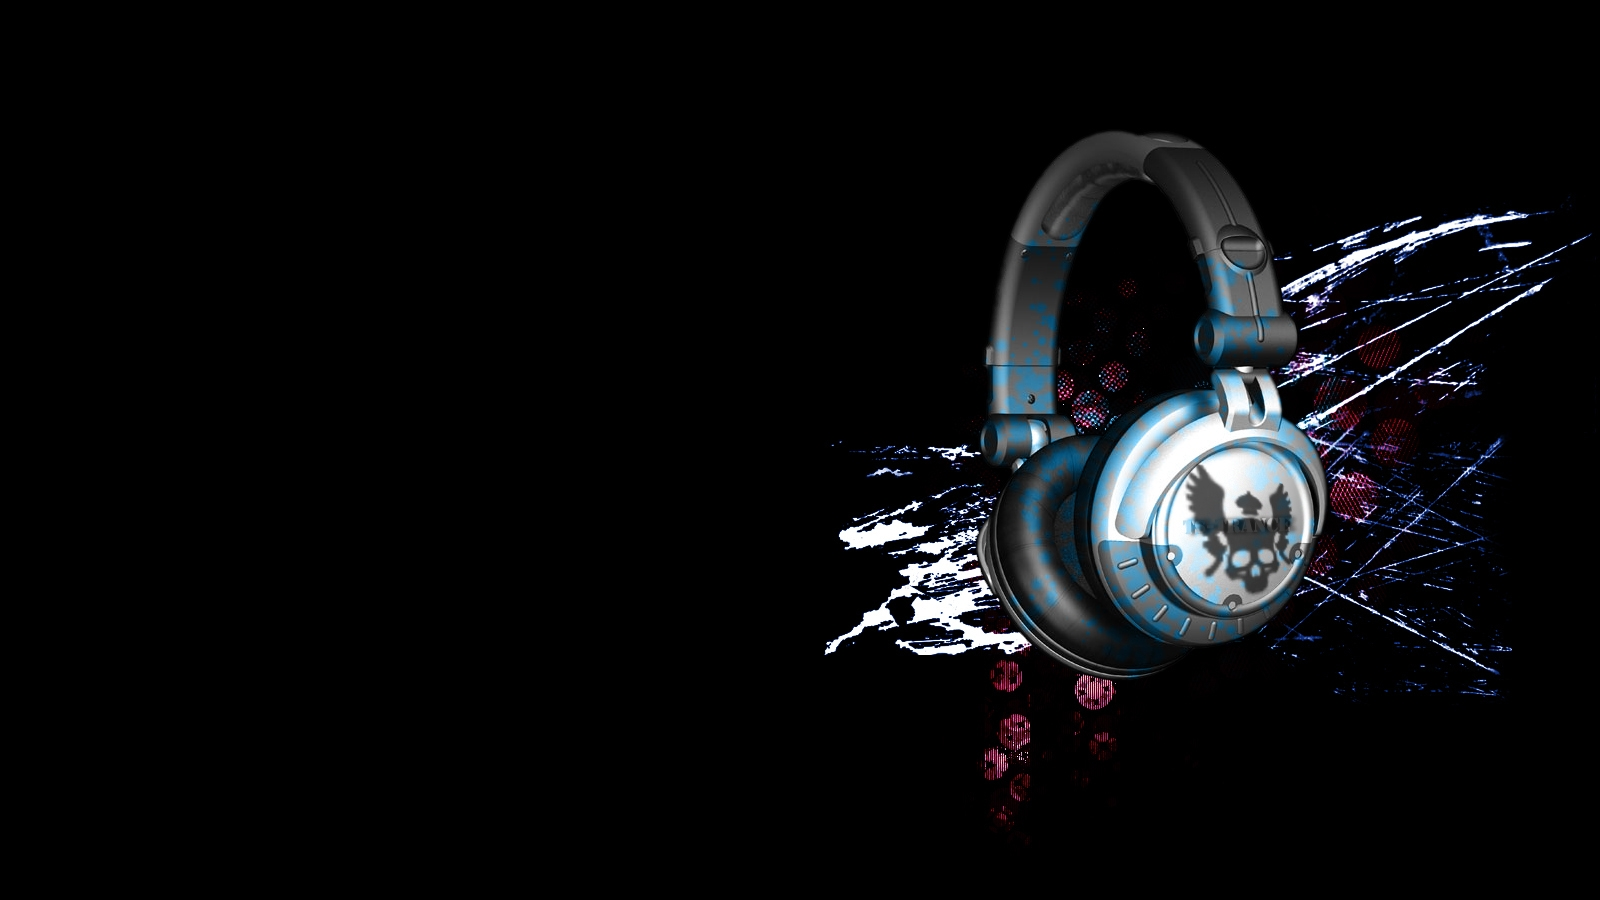 Music wallpaper hd wallpapersafari - Wallpaper 1920x1080 music ...